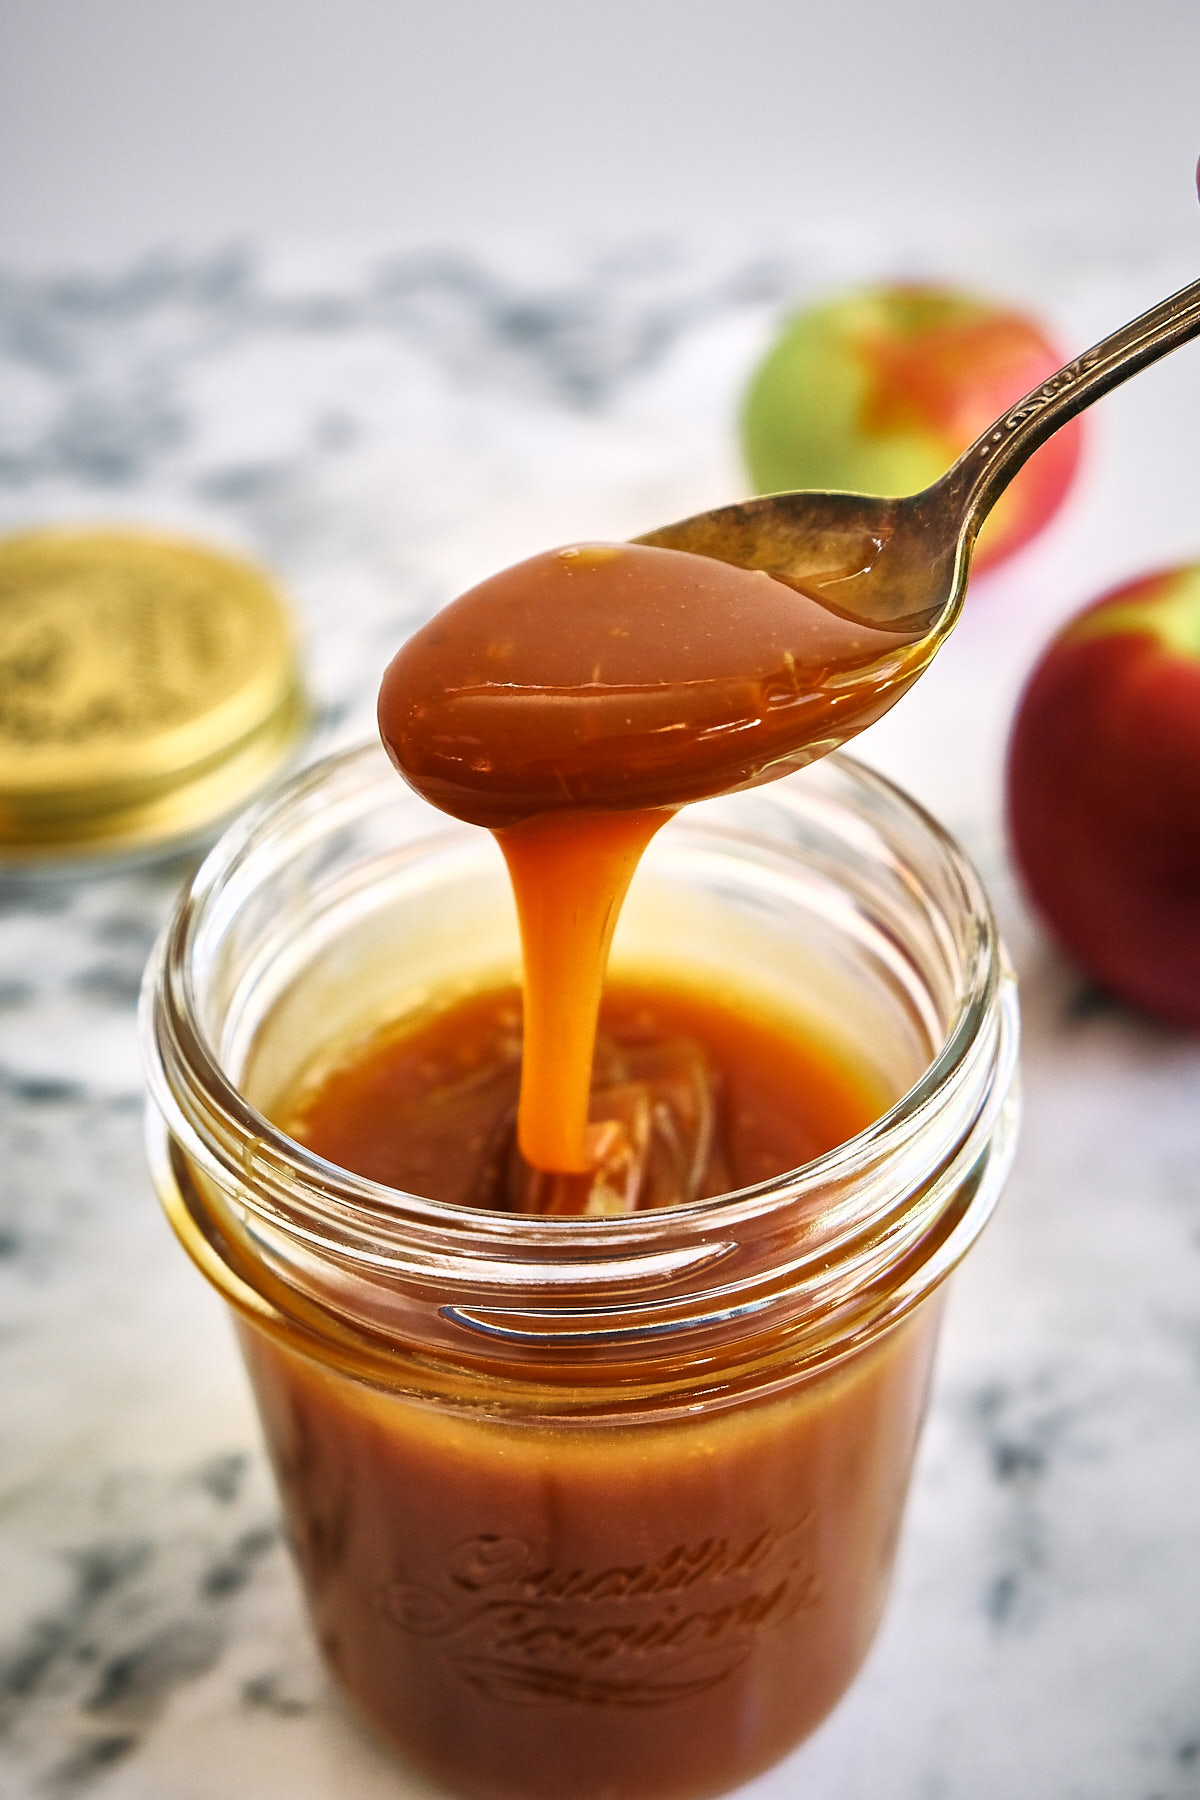 A spoonful of dairy free caramel apple dip from a mason jar with apples on the table.